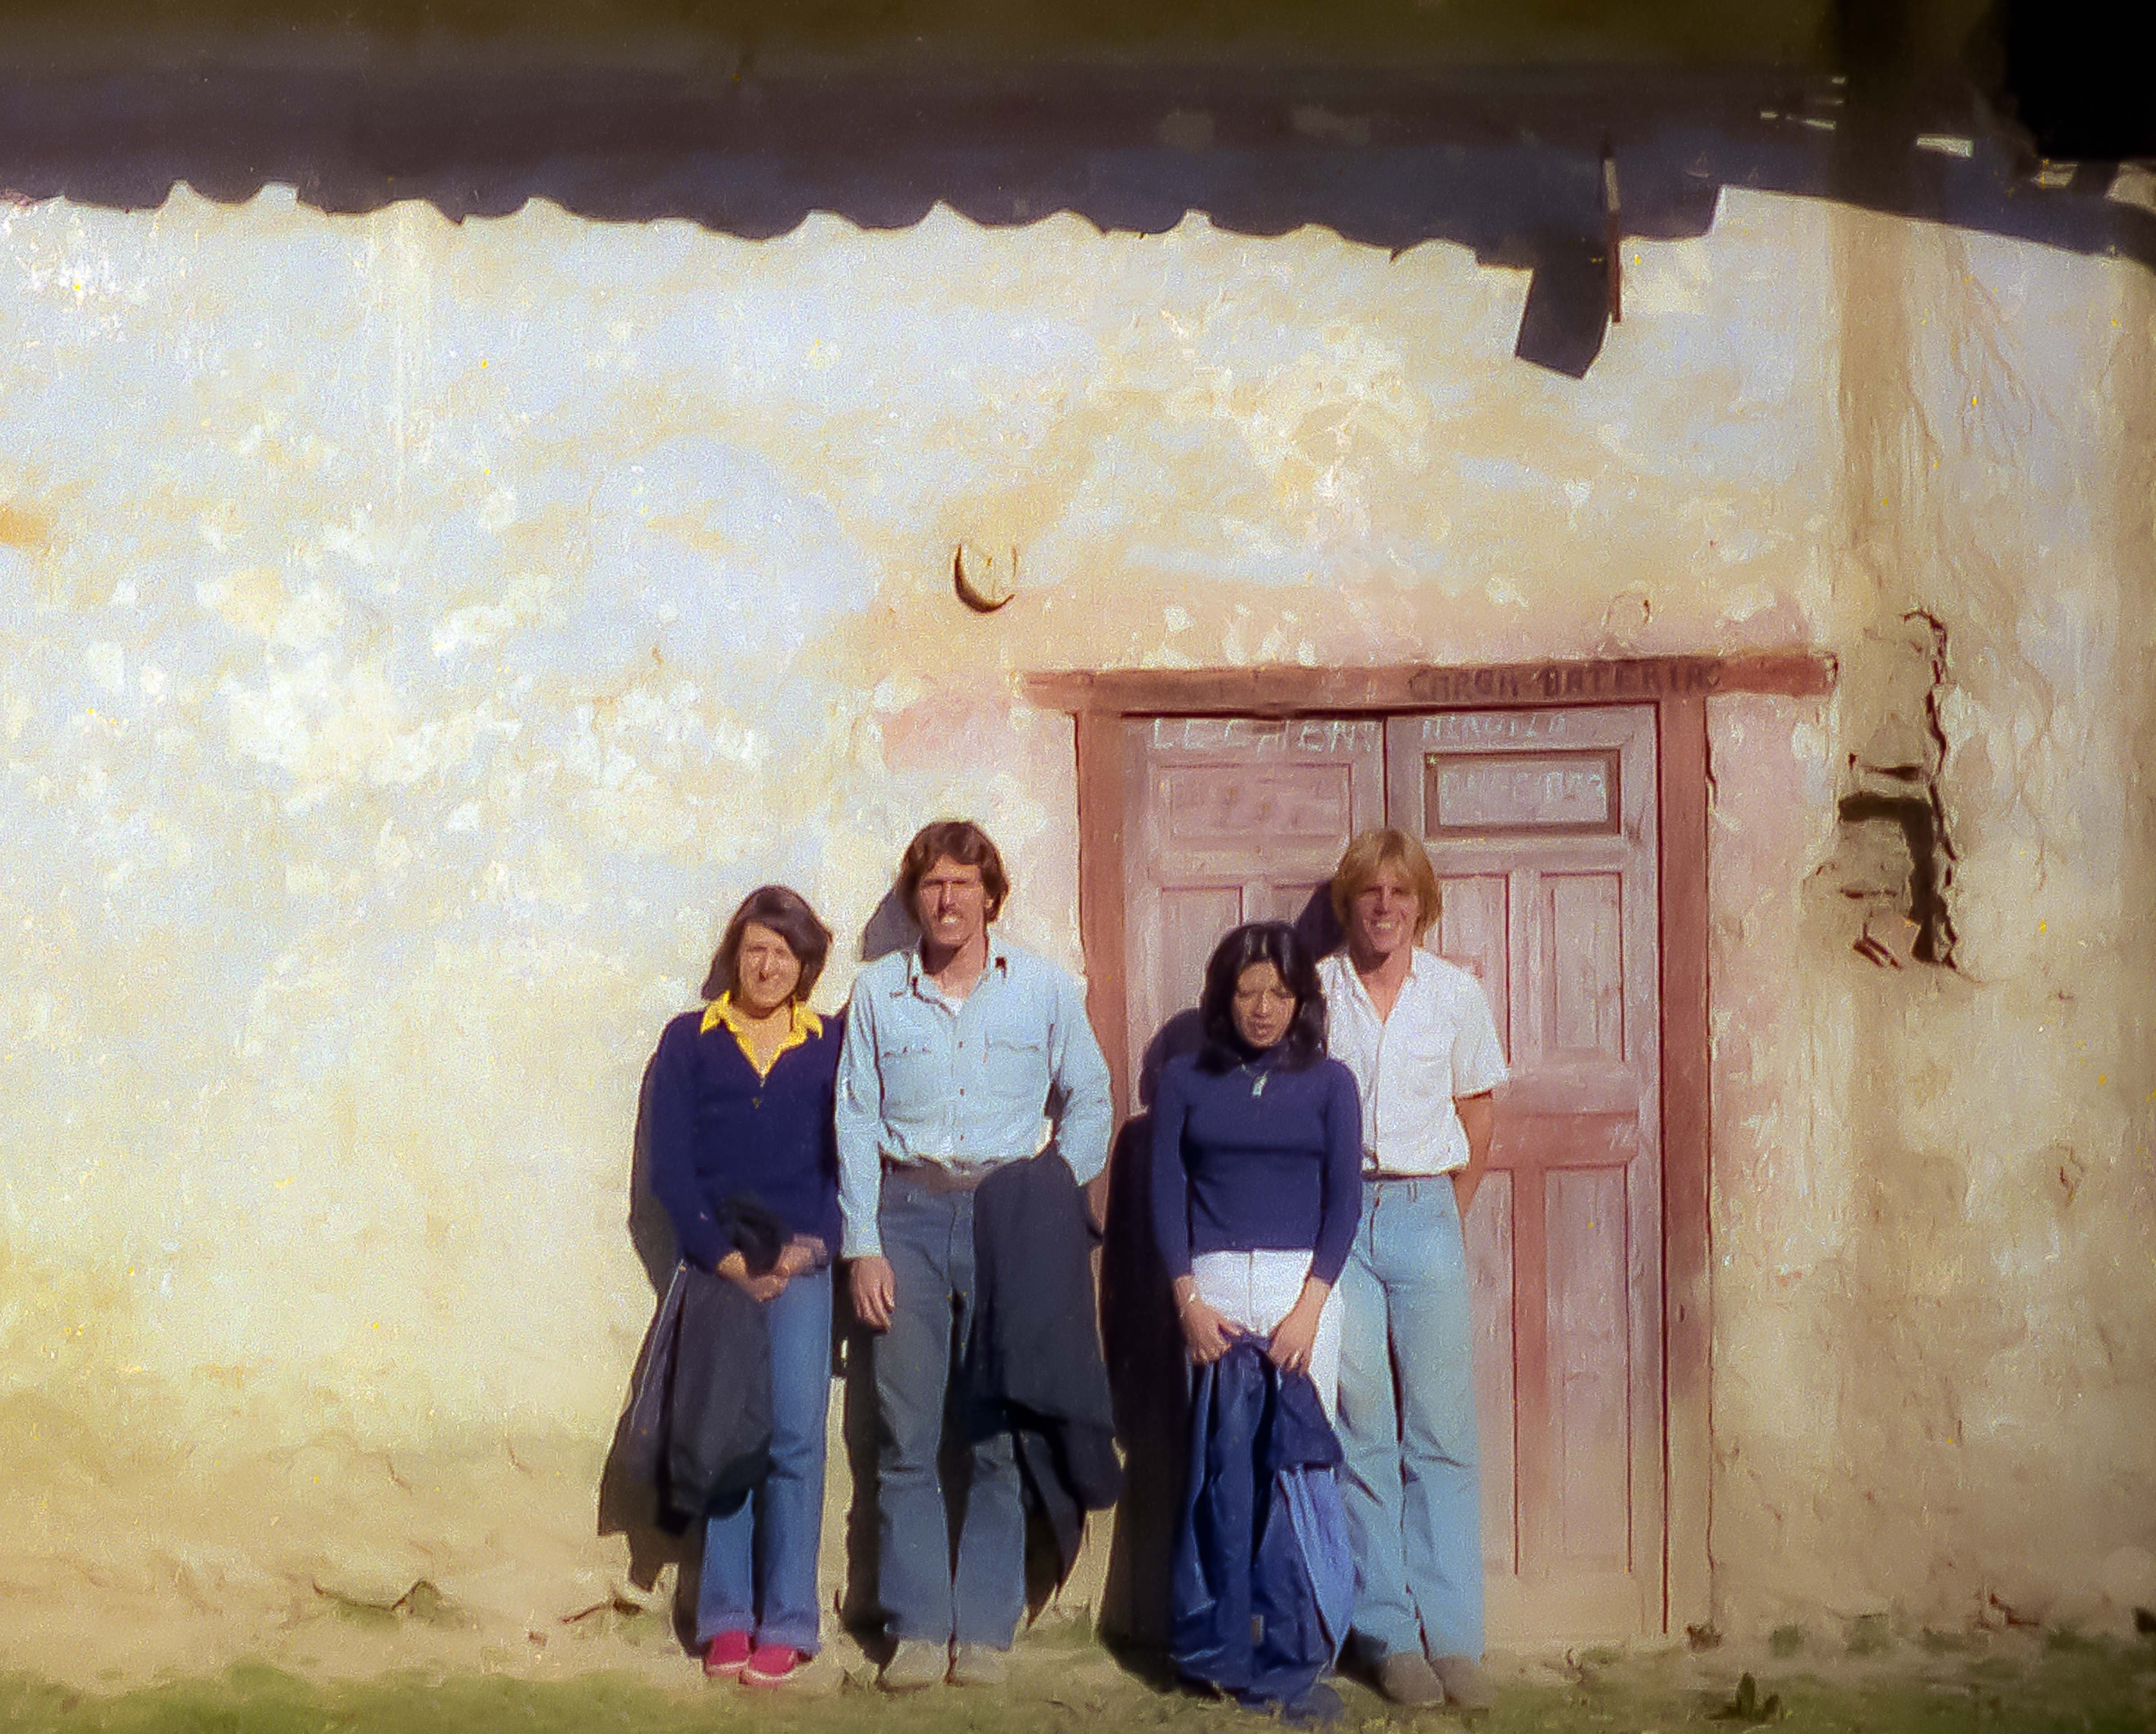 Peru, Lilly, Gary Cappa, Monyo And Jeff Shea, 1979